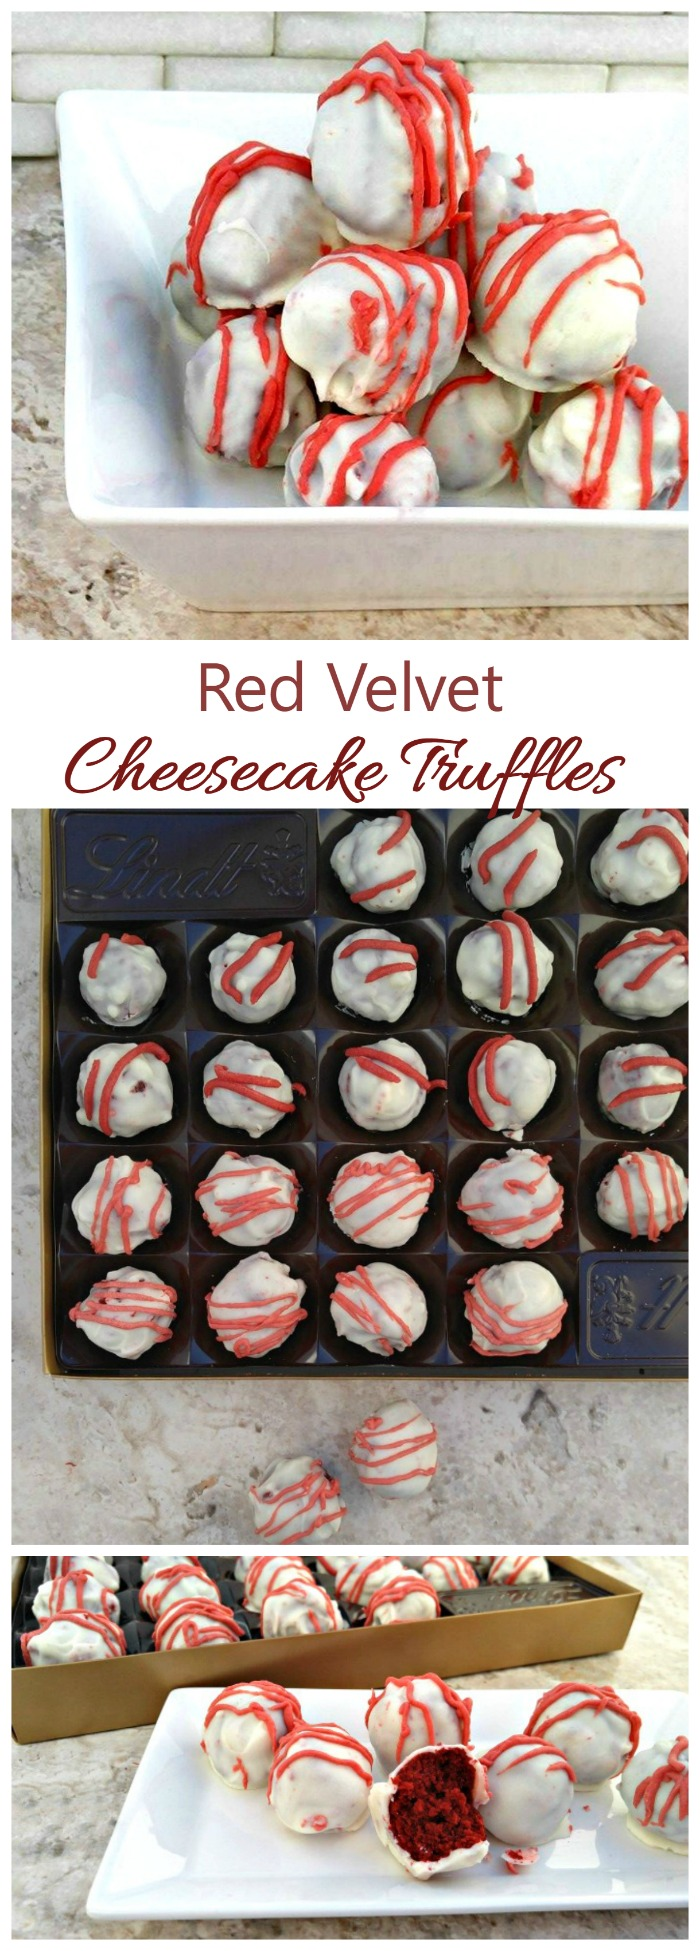 These red velvet cheesecake truffles have a cake center and creamy drizzled white chocolate coating. They are easy to make and perfect for any special occasion.